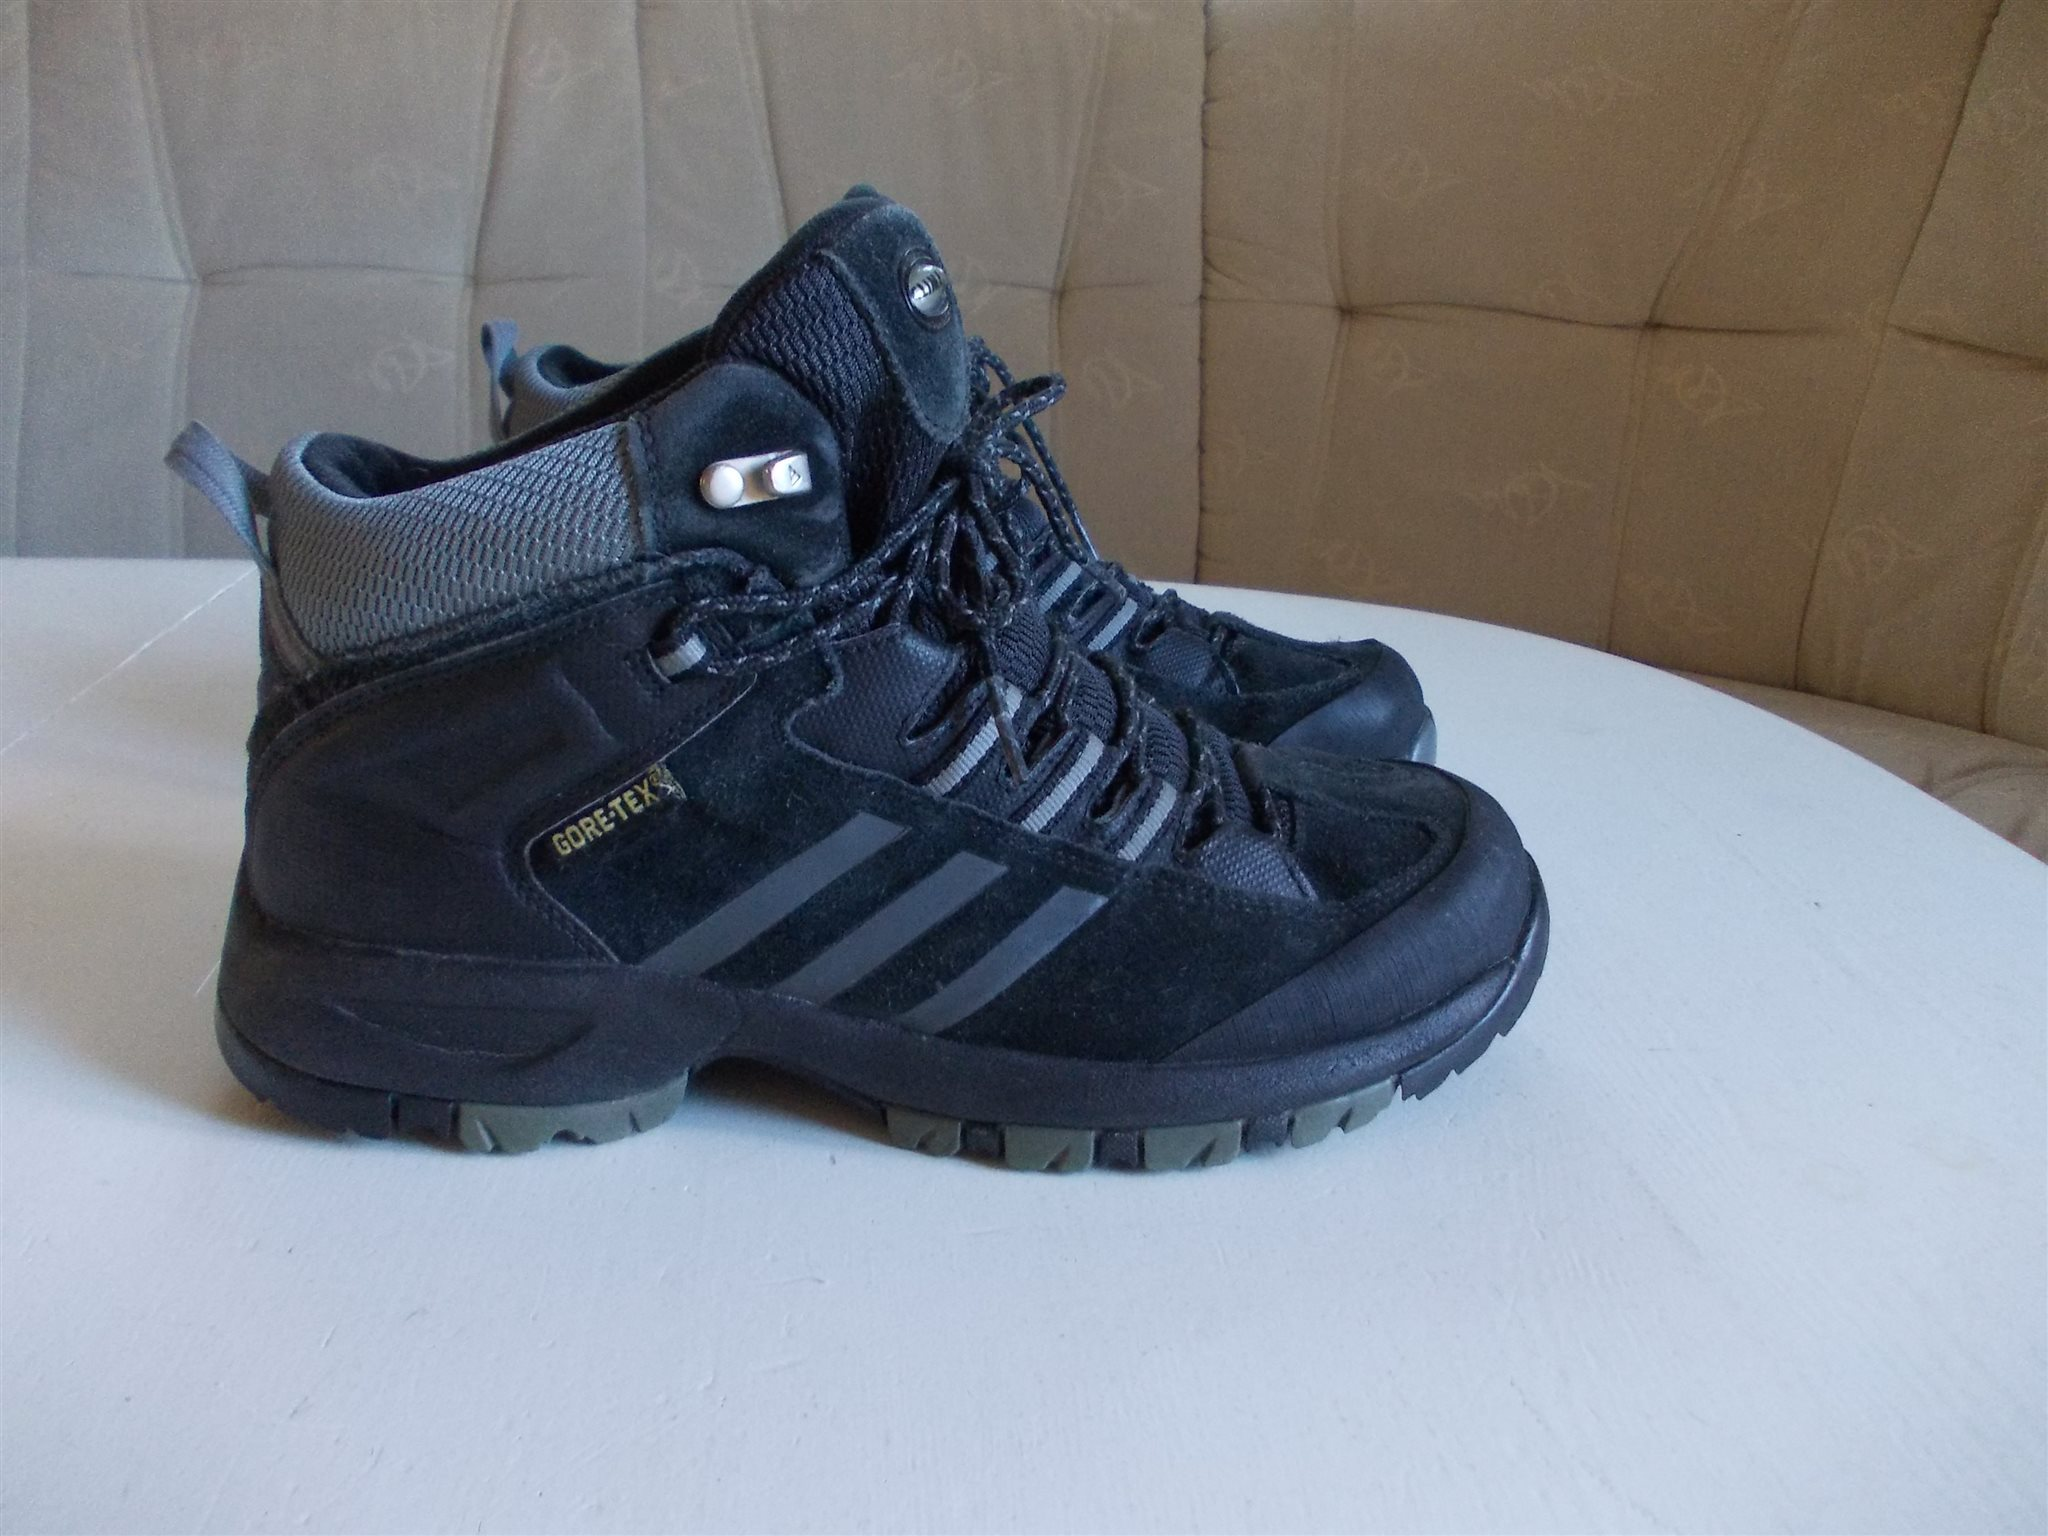 detailed look 73050 196e6 323871524 38 tex Adidas skor mm Gore stl kängor svart 240 qRnCA6vnx